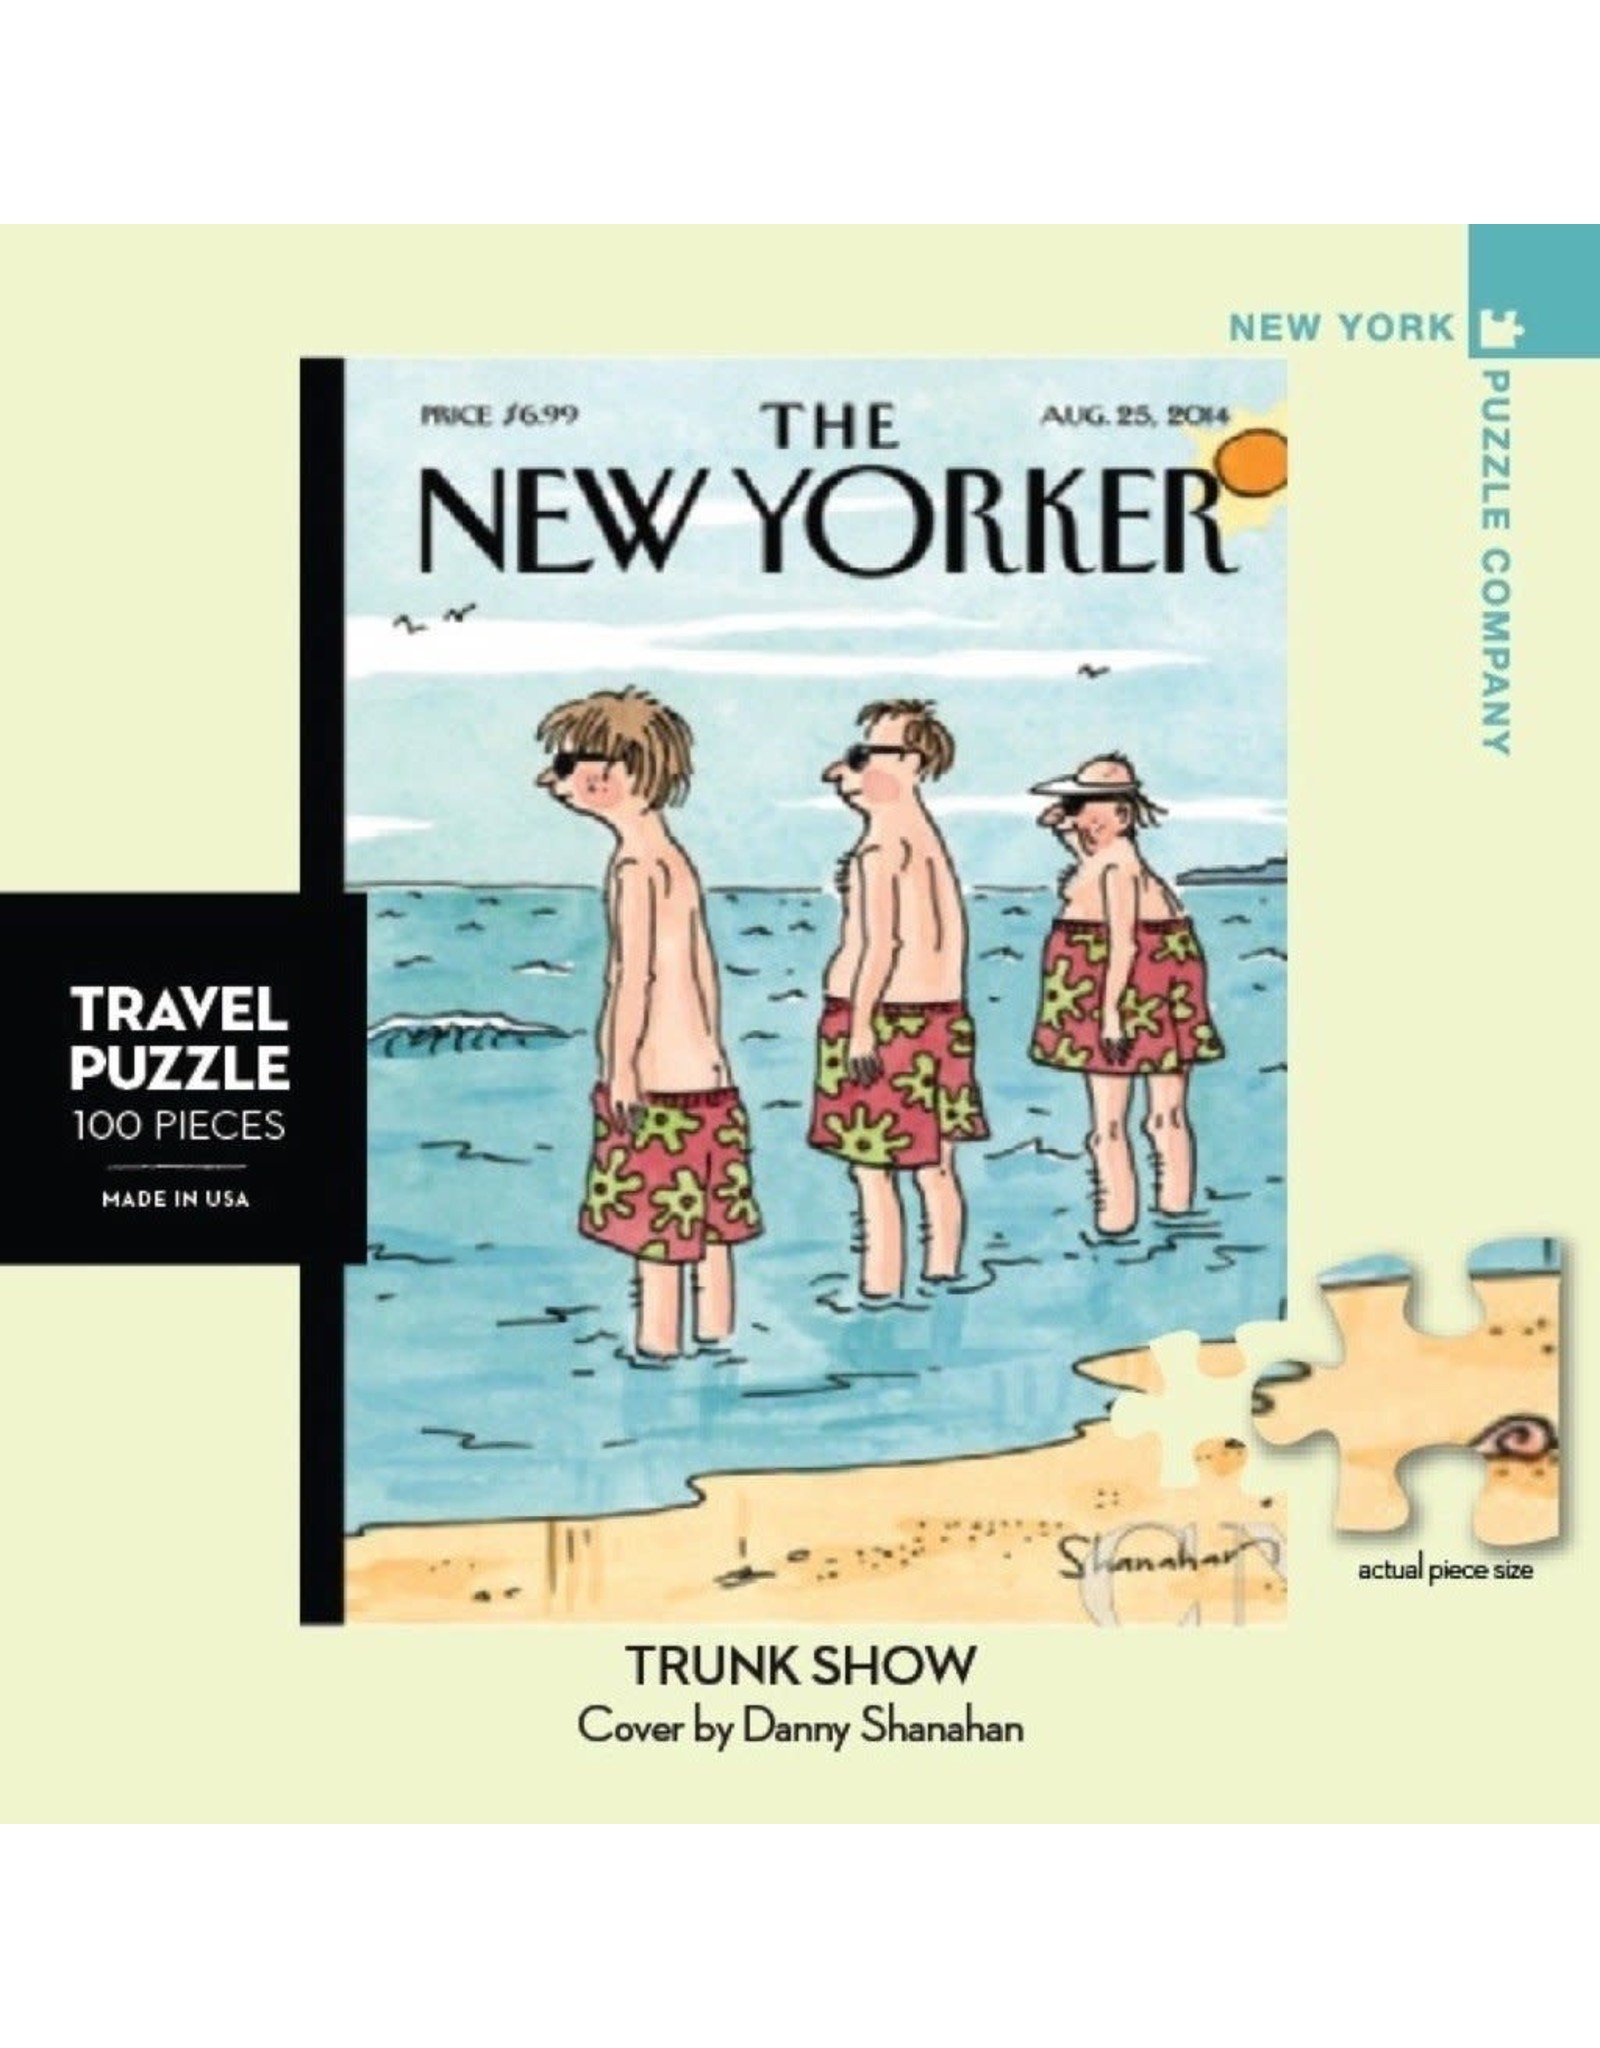 New Yorker Mini Puzzle - Trunk Show